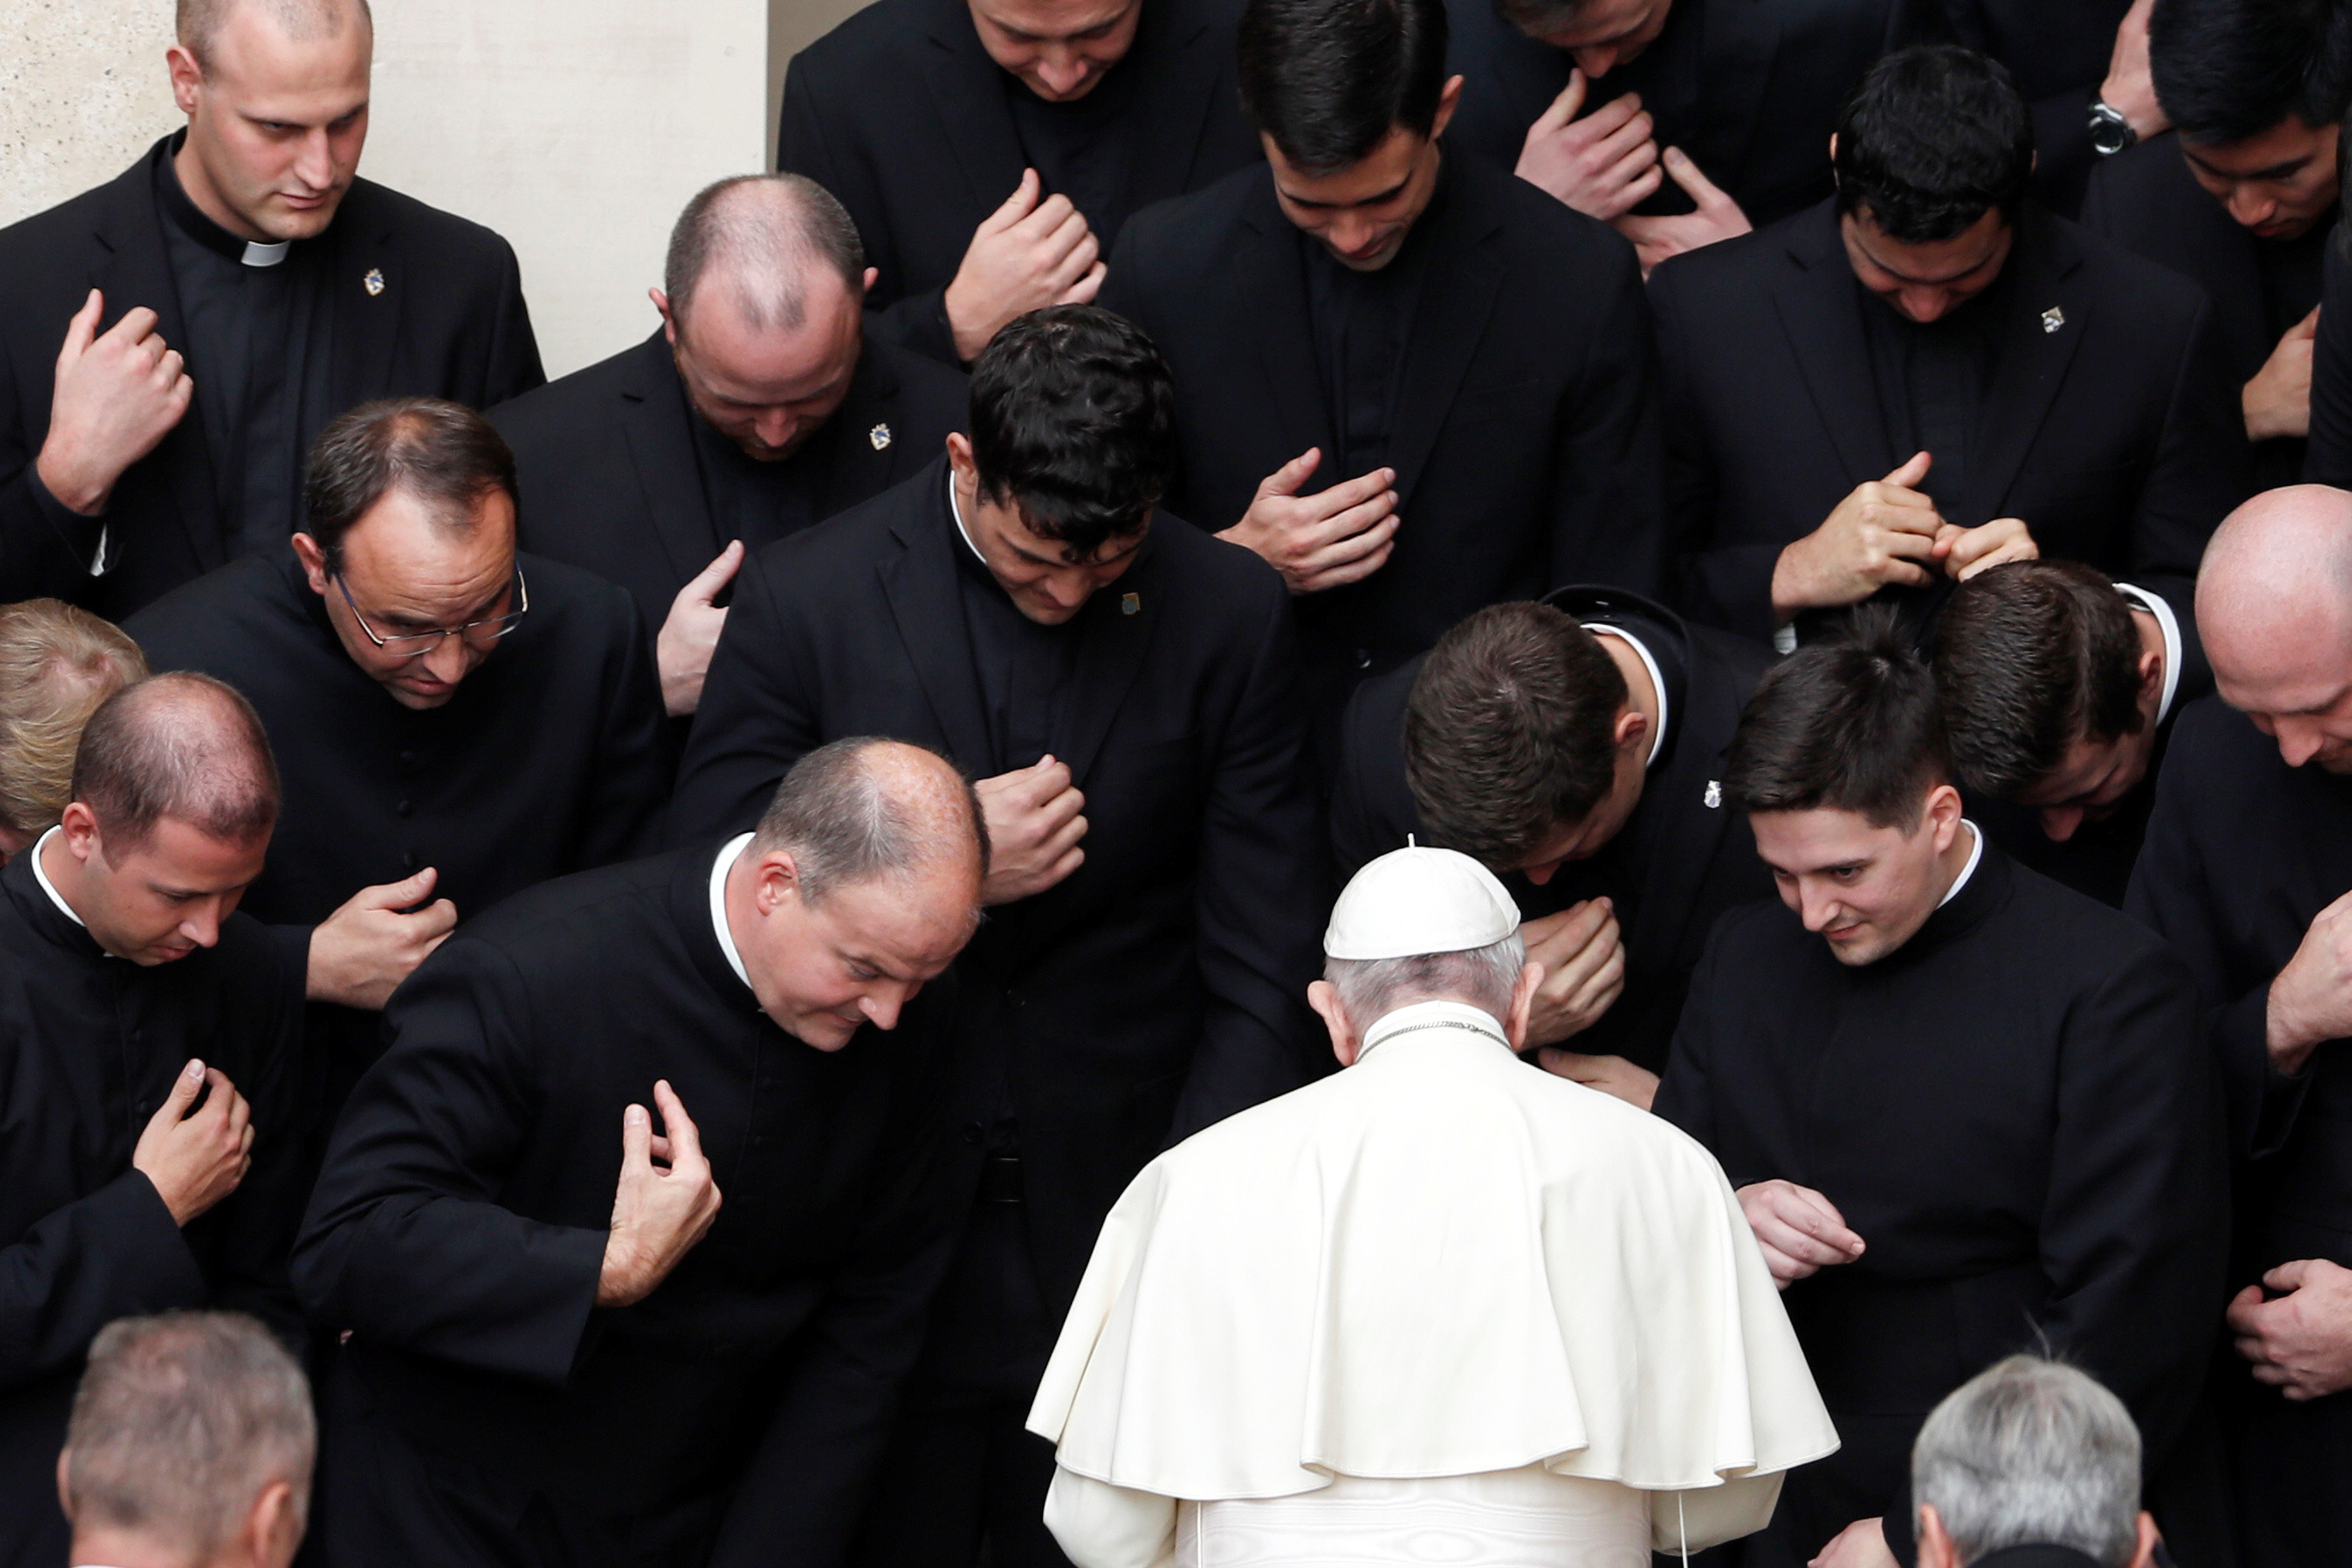 Pope Francis meets with members of the clergy after his weekly general audience at the San Damaso courtyard, at the Vatican, September 30 2020. REUTERS/Yara Nardi - RC2X8J96HY8F